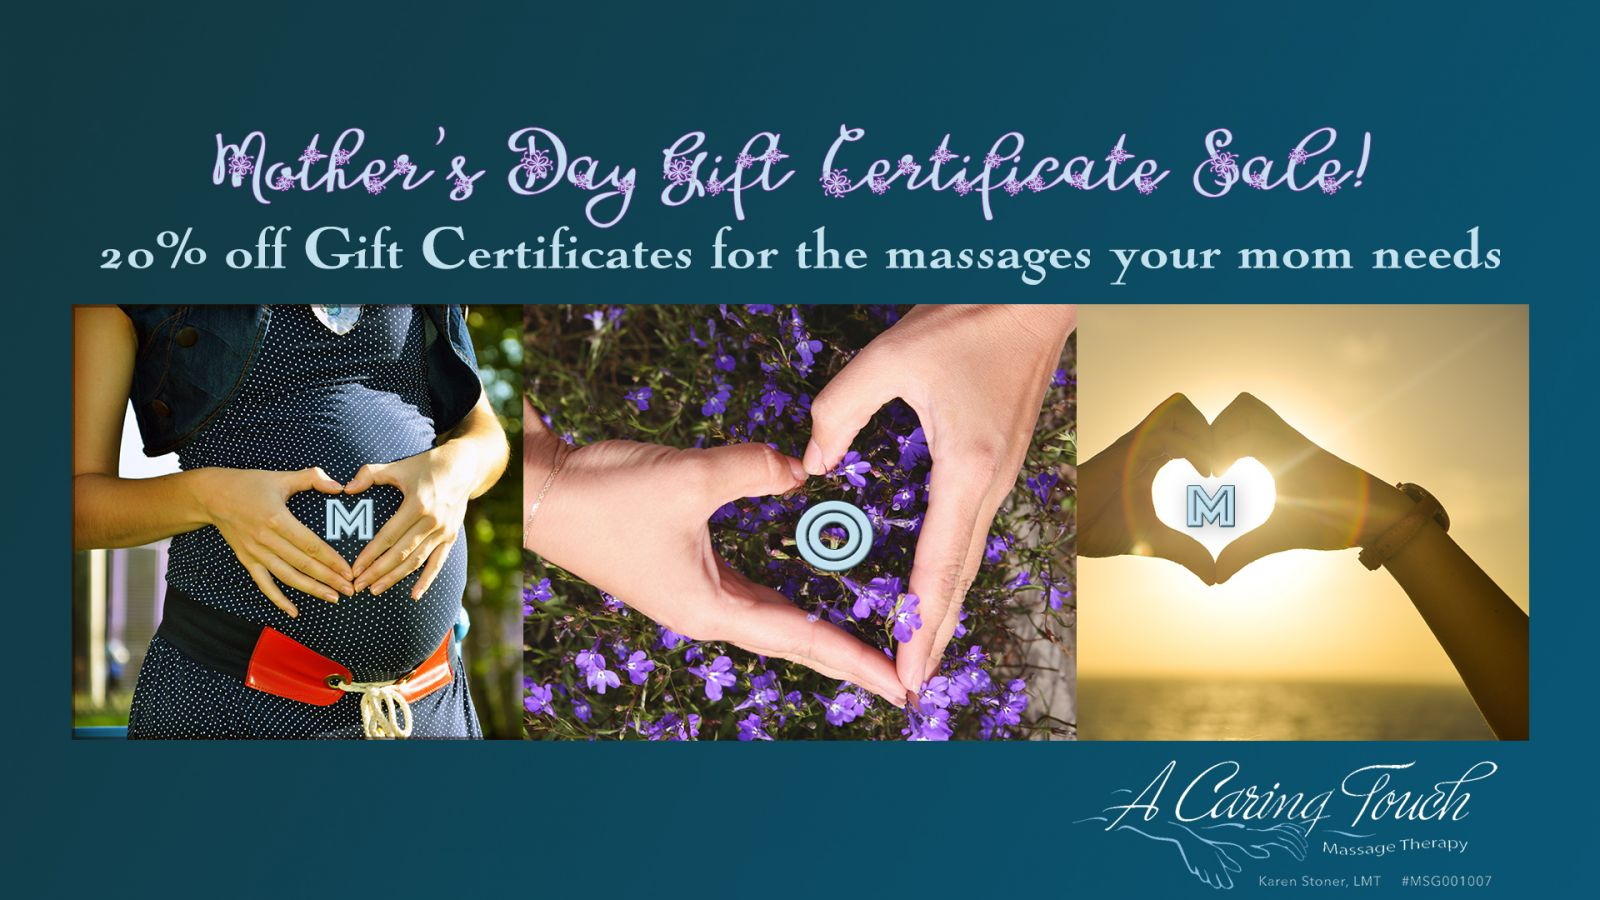 Mother's Day Massage Gift Certificate Sale